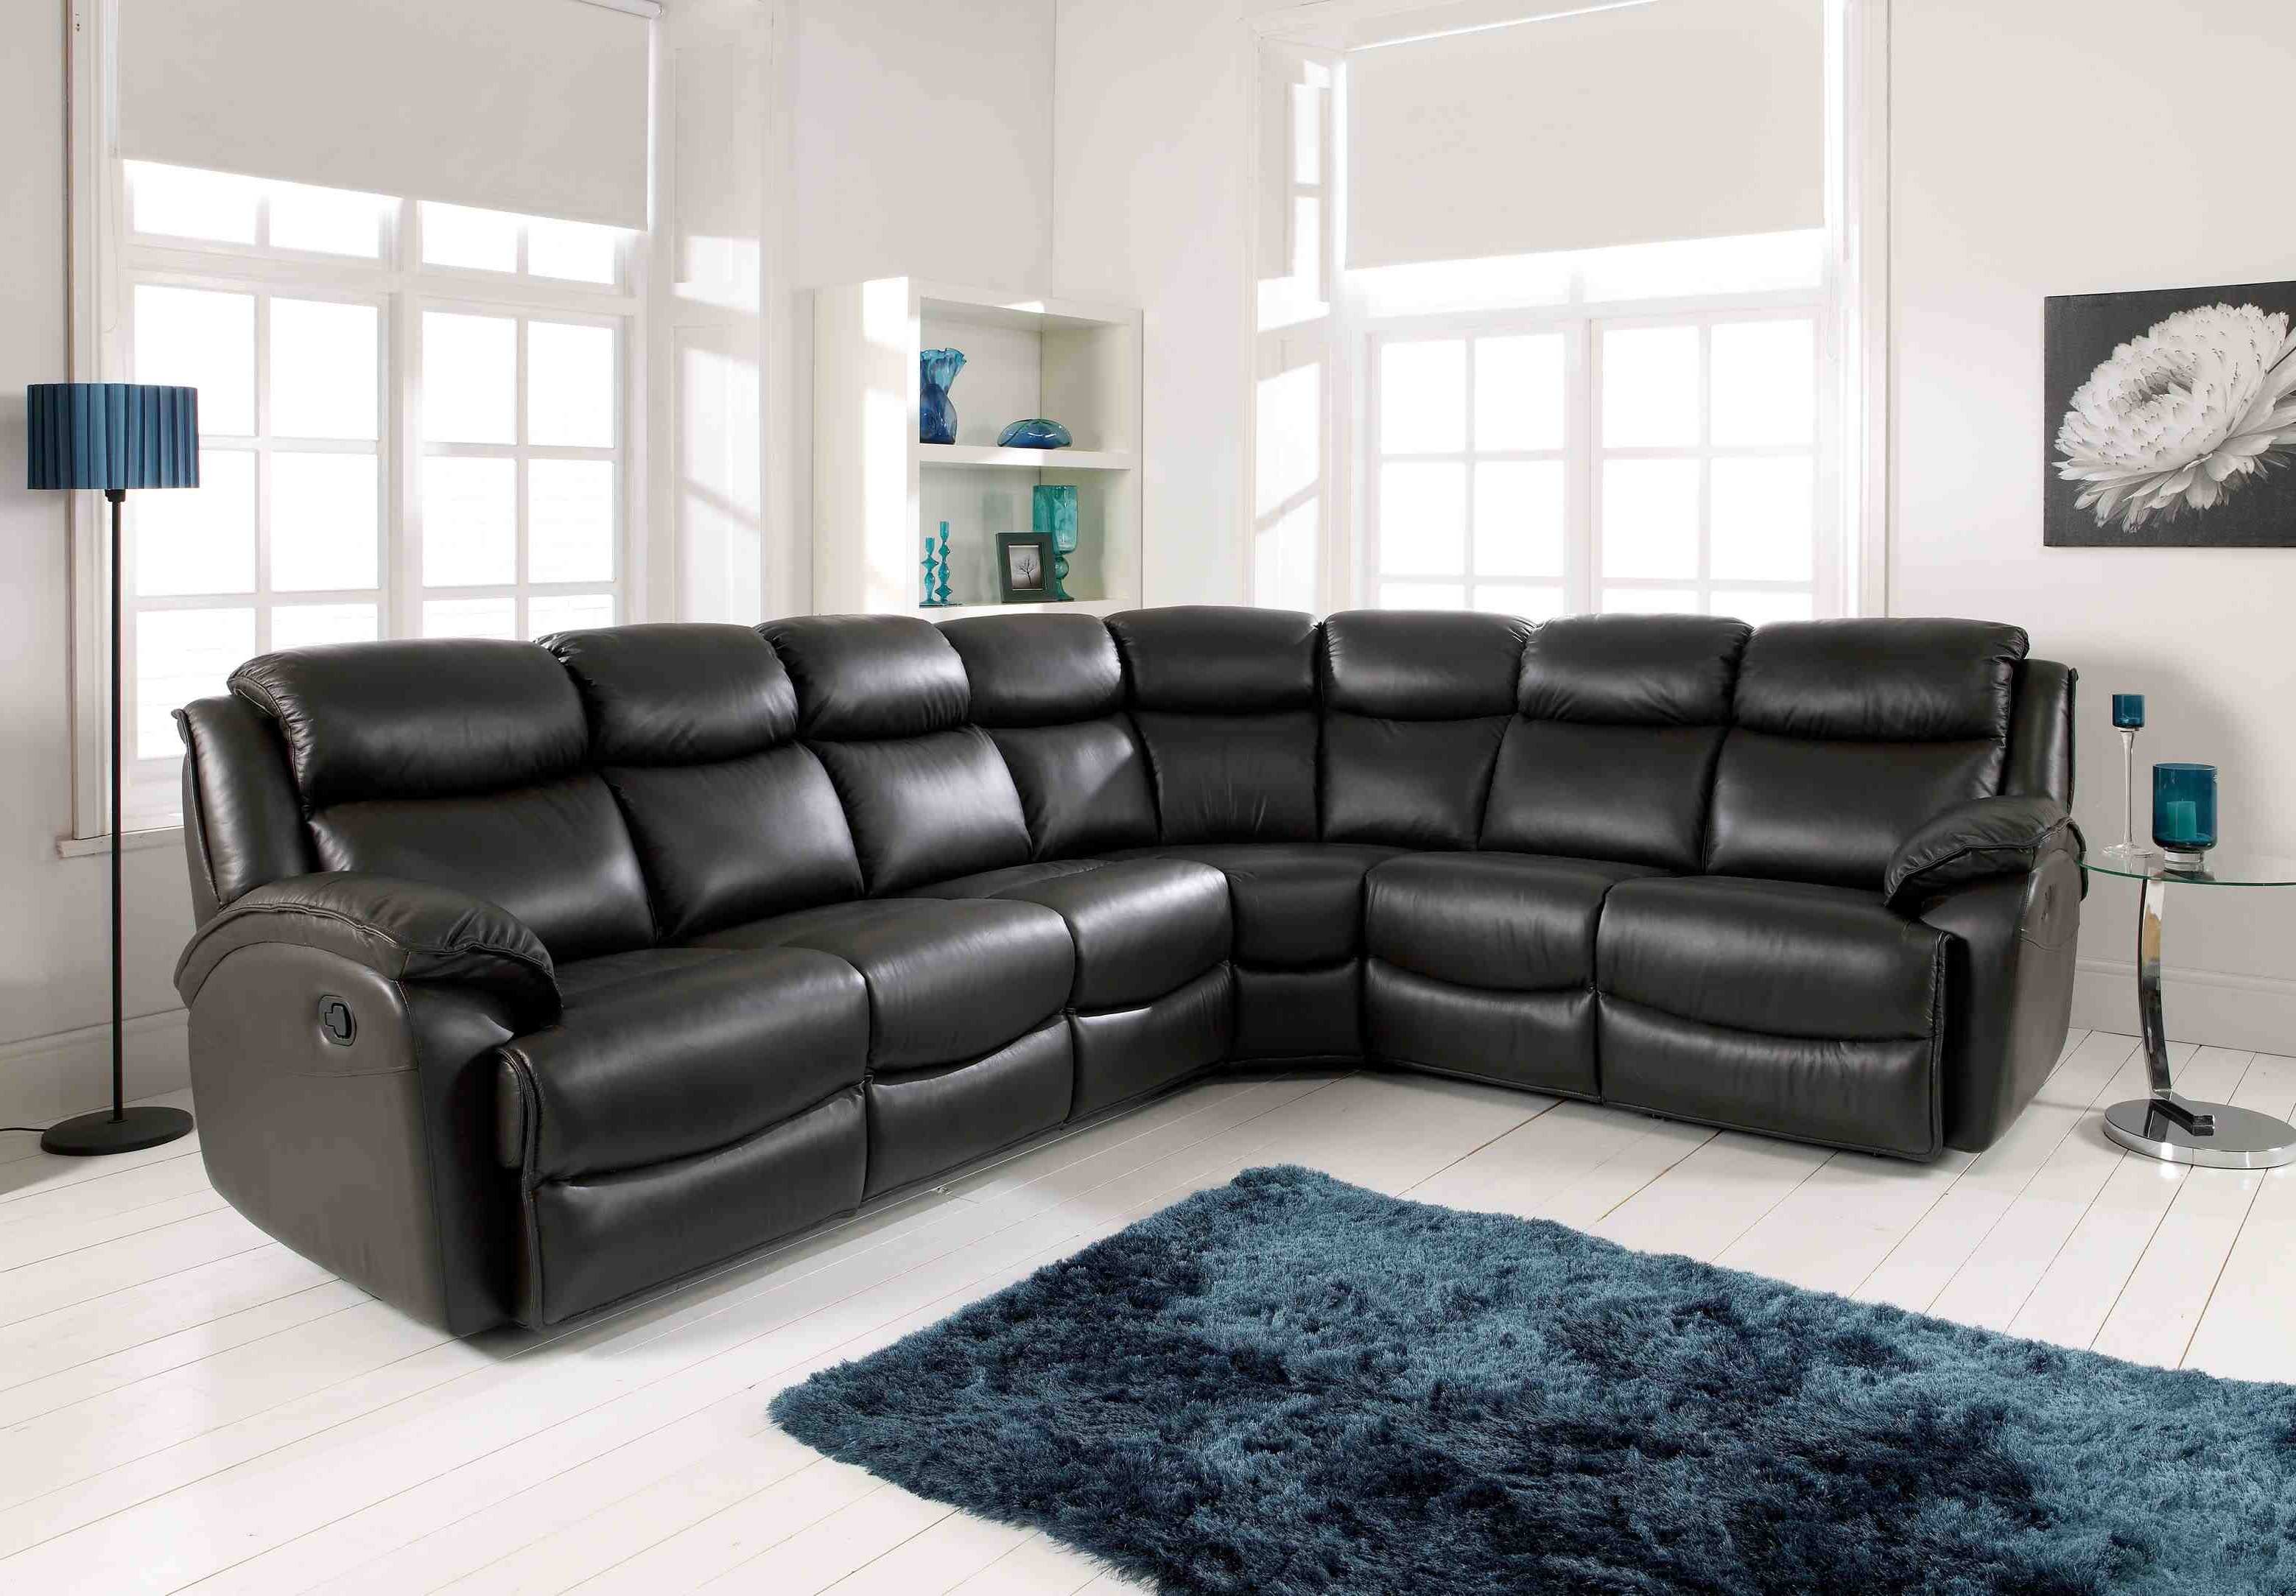 Popular Recliners Chairs & Sofa : Sectional Best Leather Furniture Brands With Regard To High Quality Sectional Sofas (View 15 of 15)